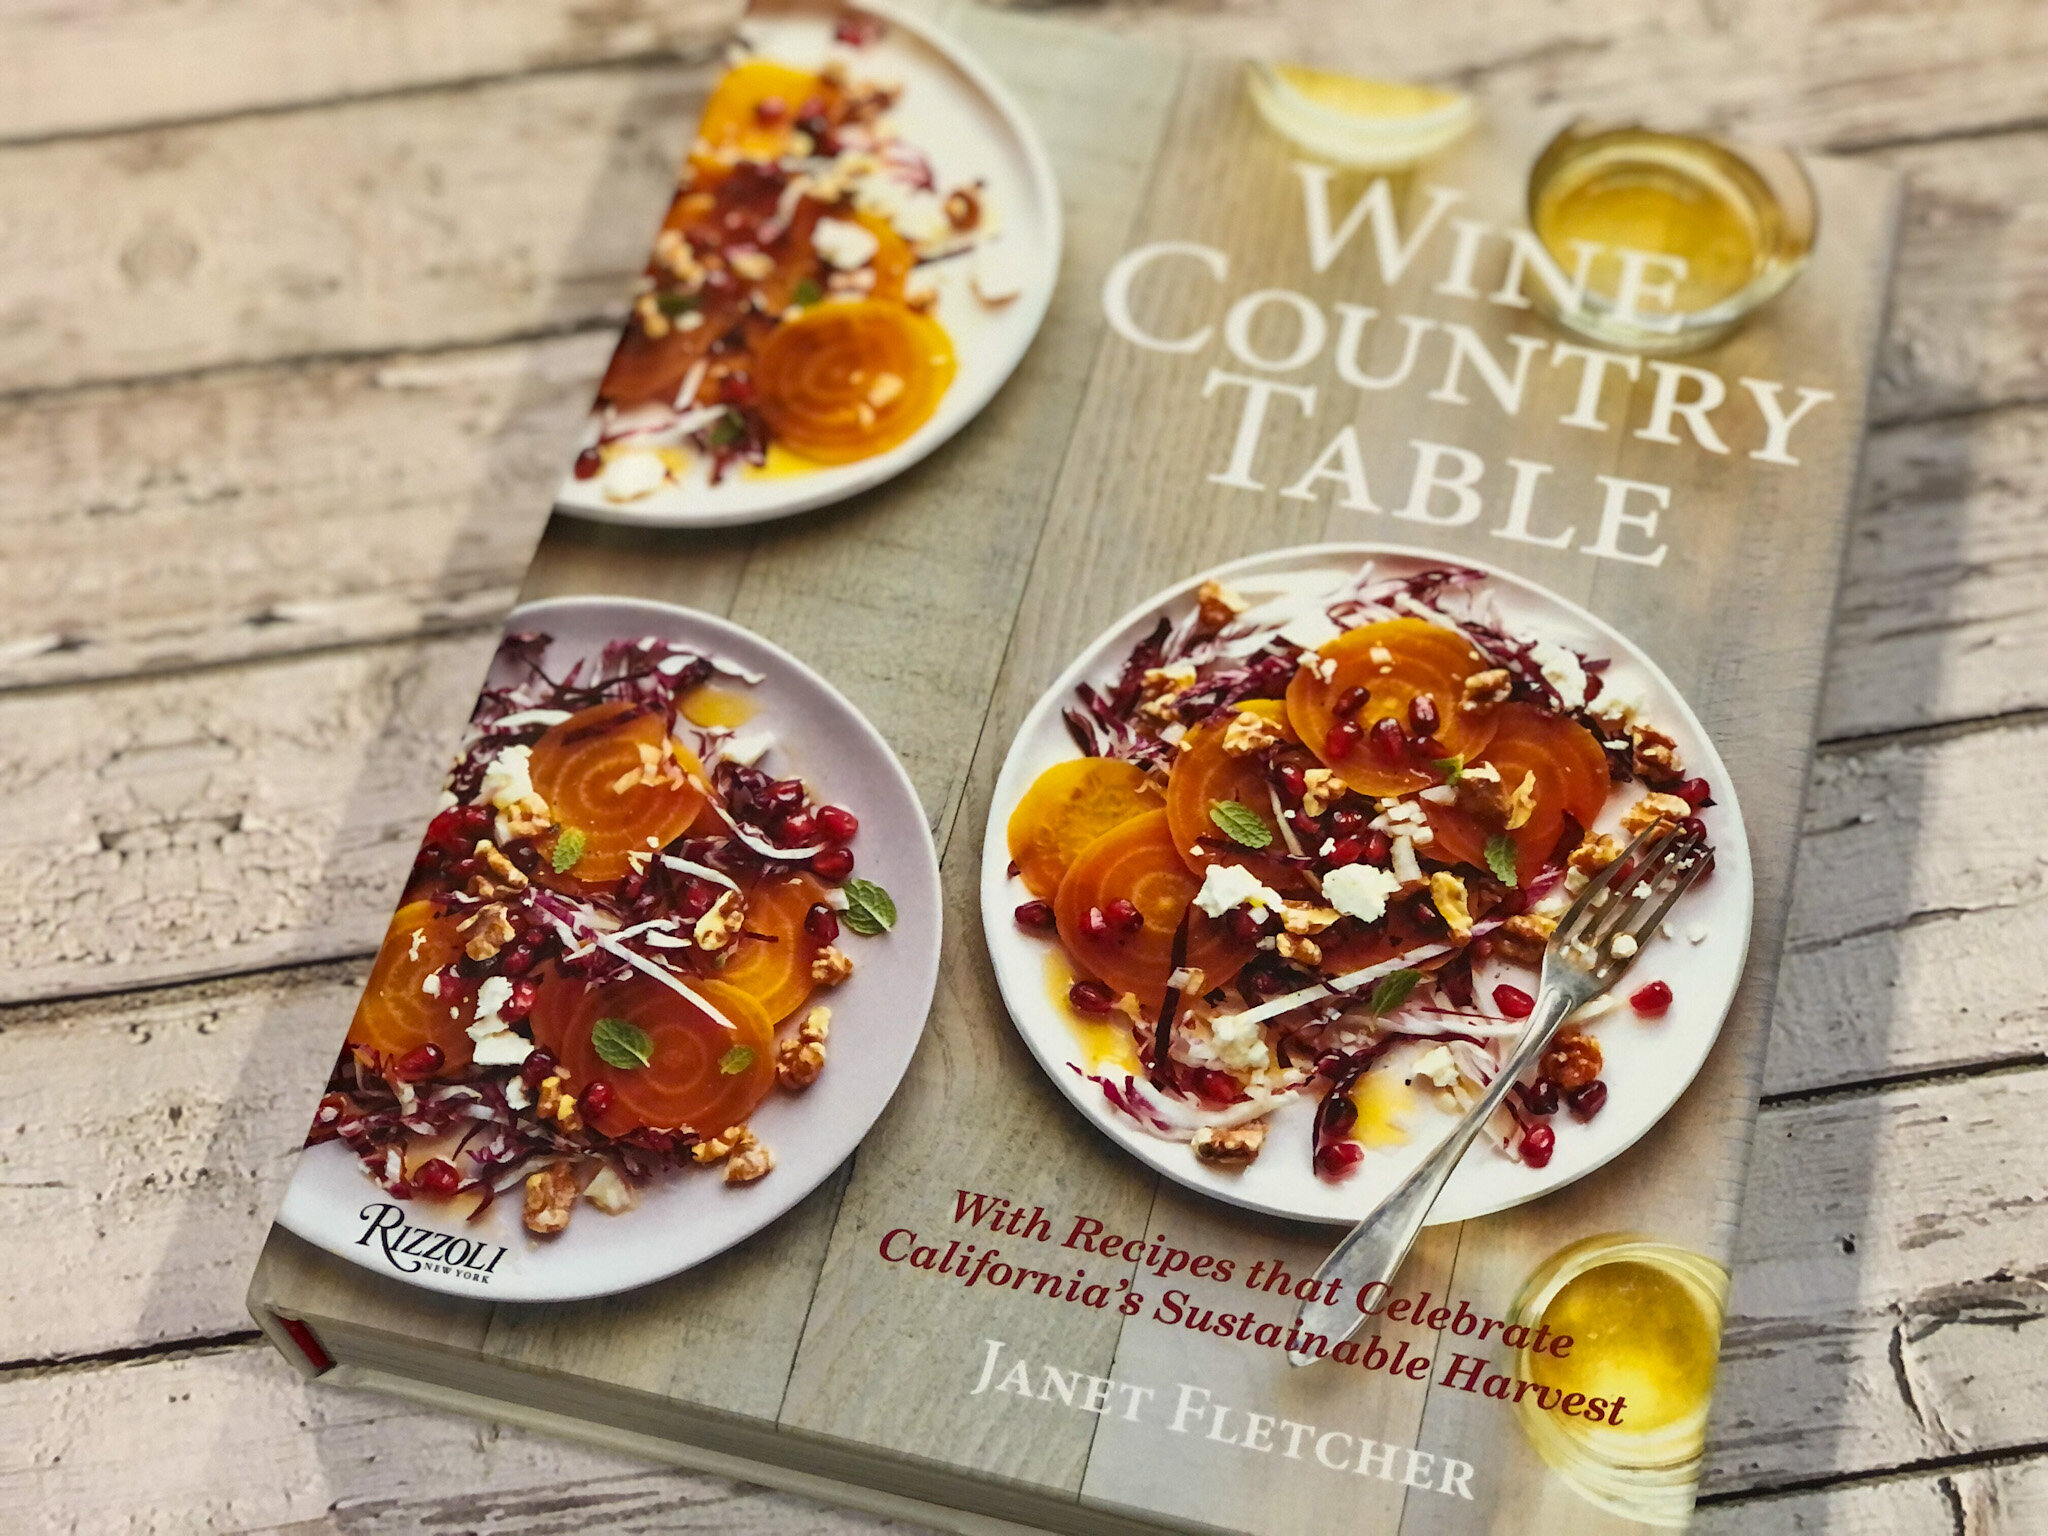 Wine Country Table Book, some of the Best Gifts for Foodies.